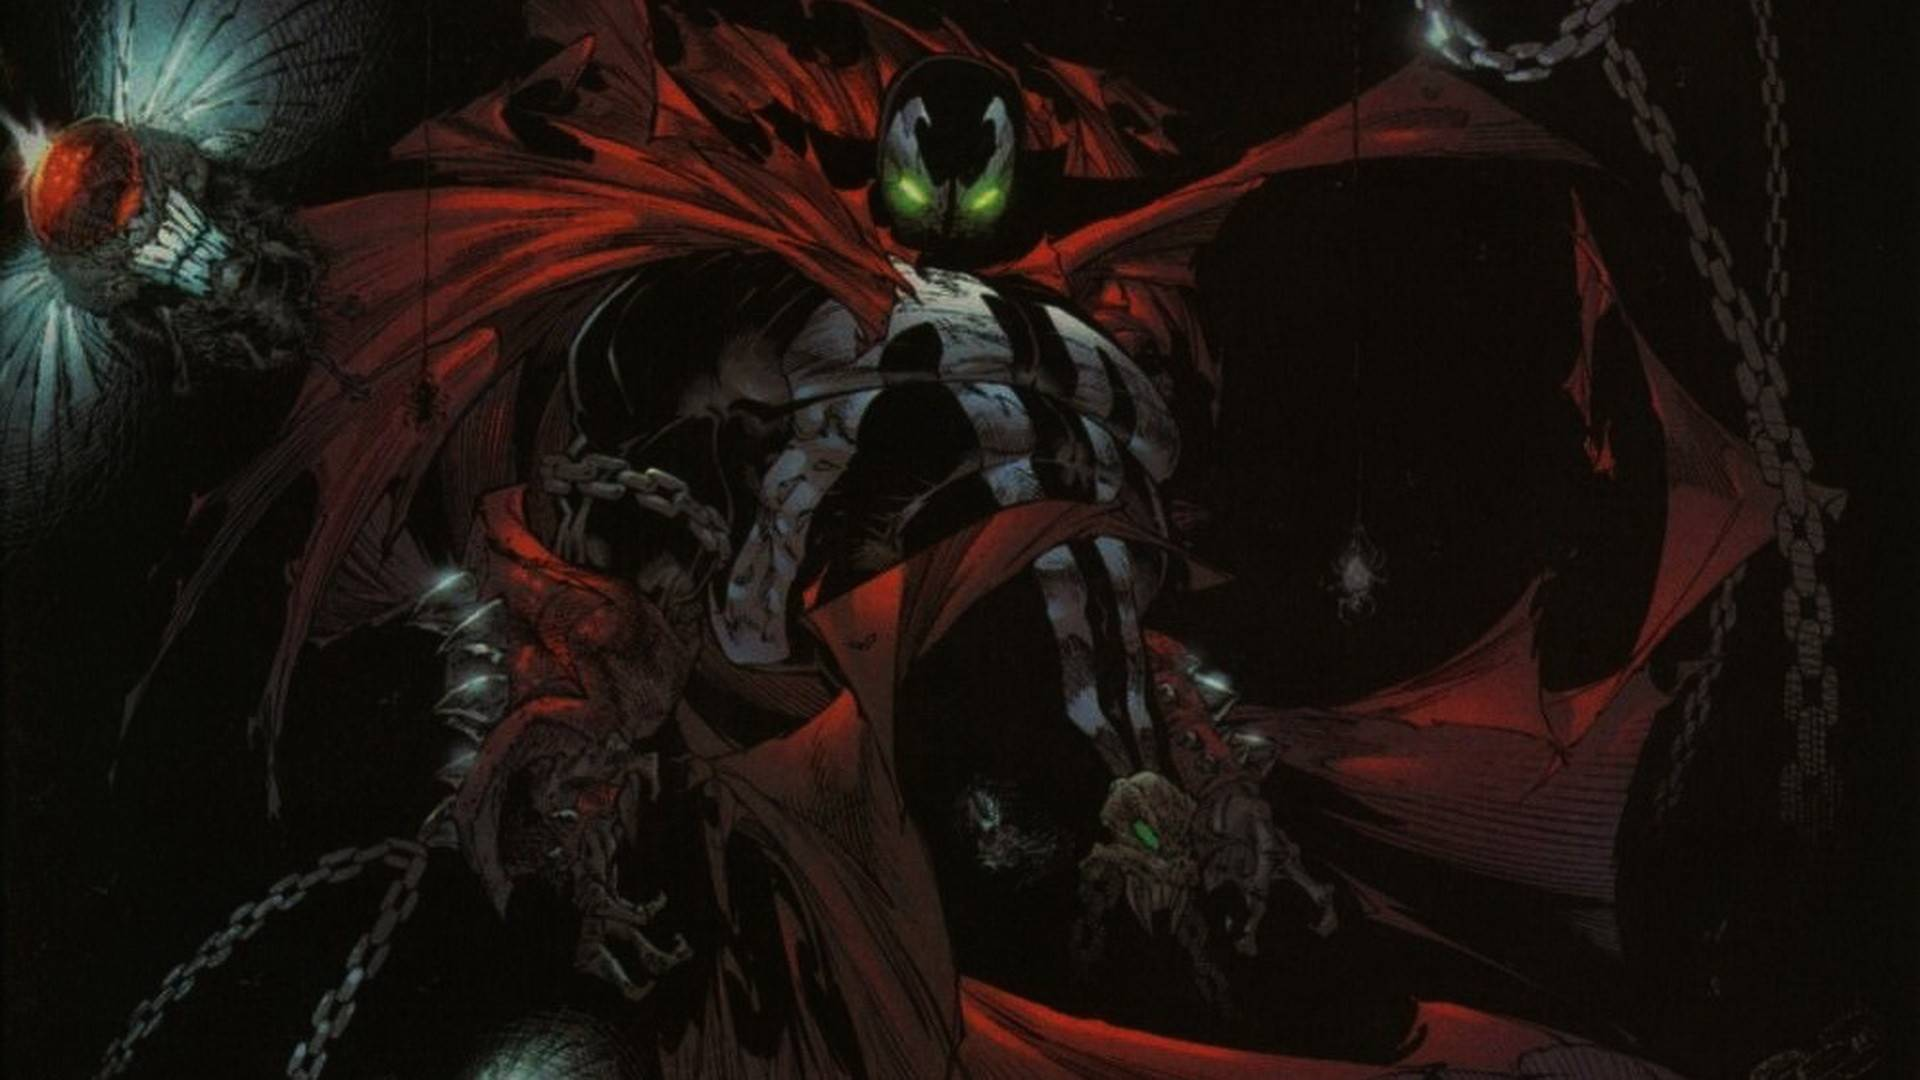 spawn wallpapers 1920x1080 - photo #3